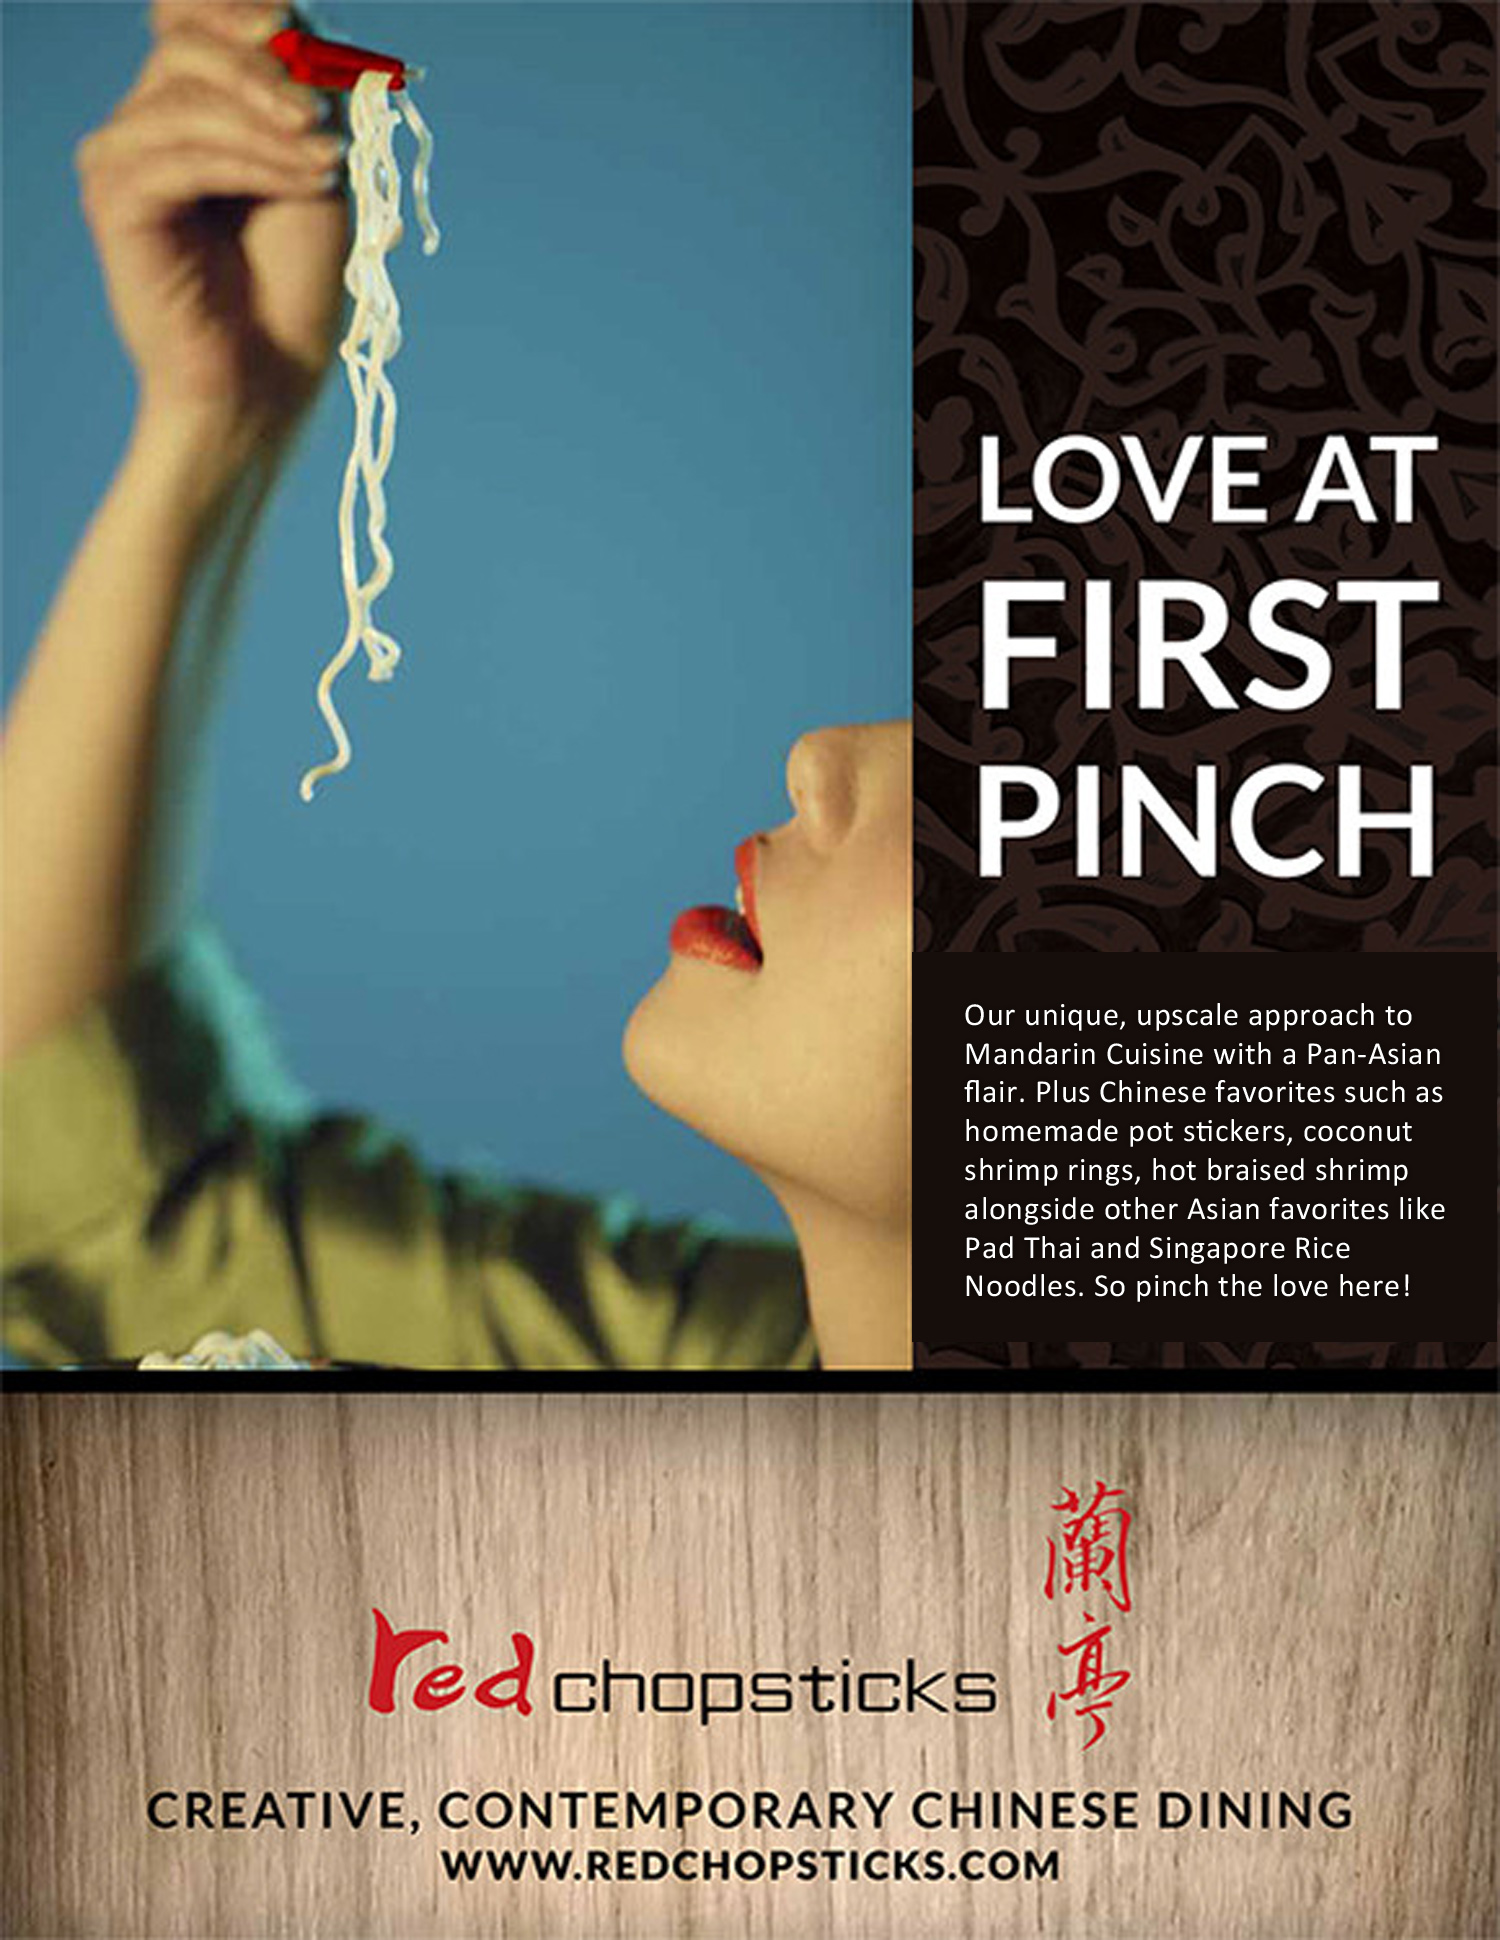 Red Chopsticks Ad Campaign